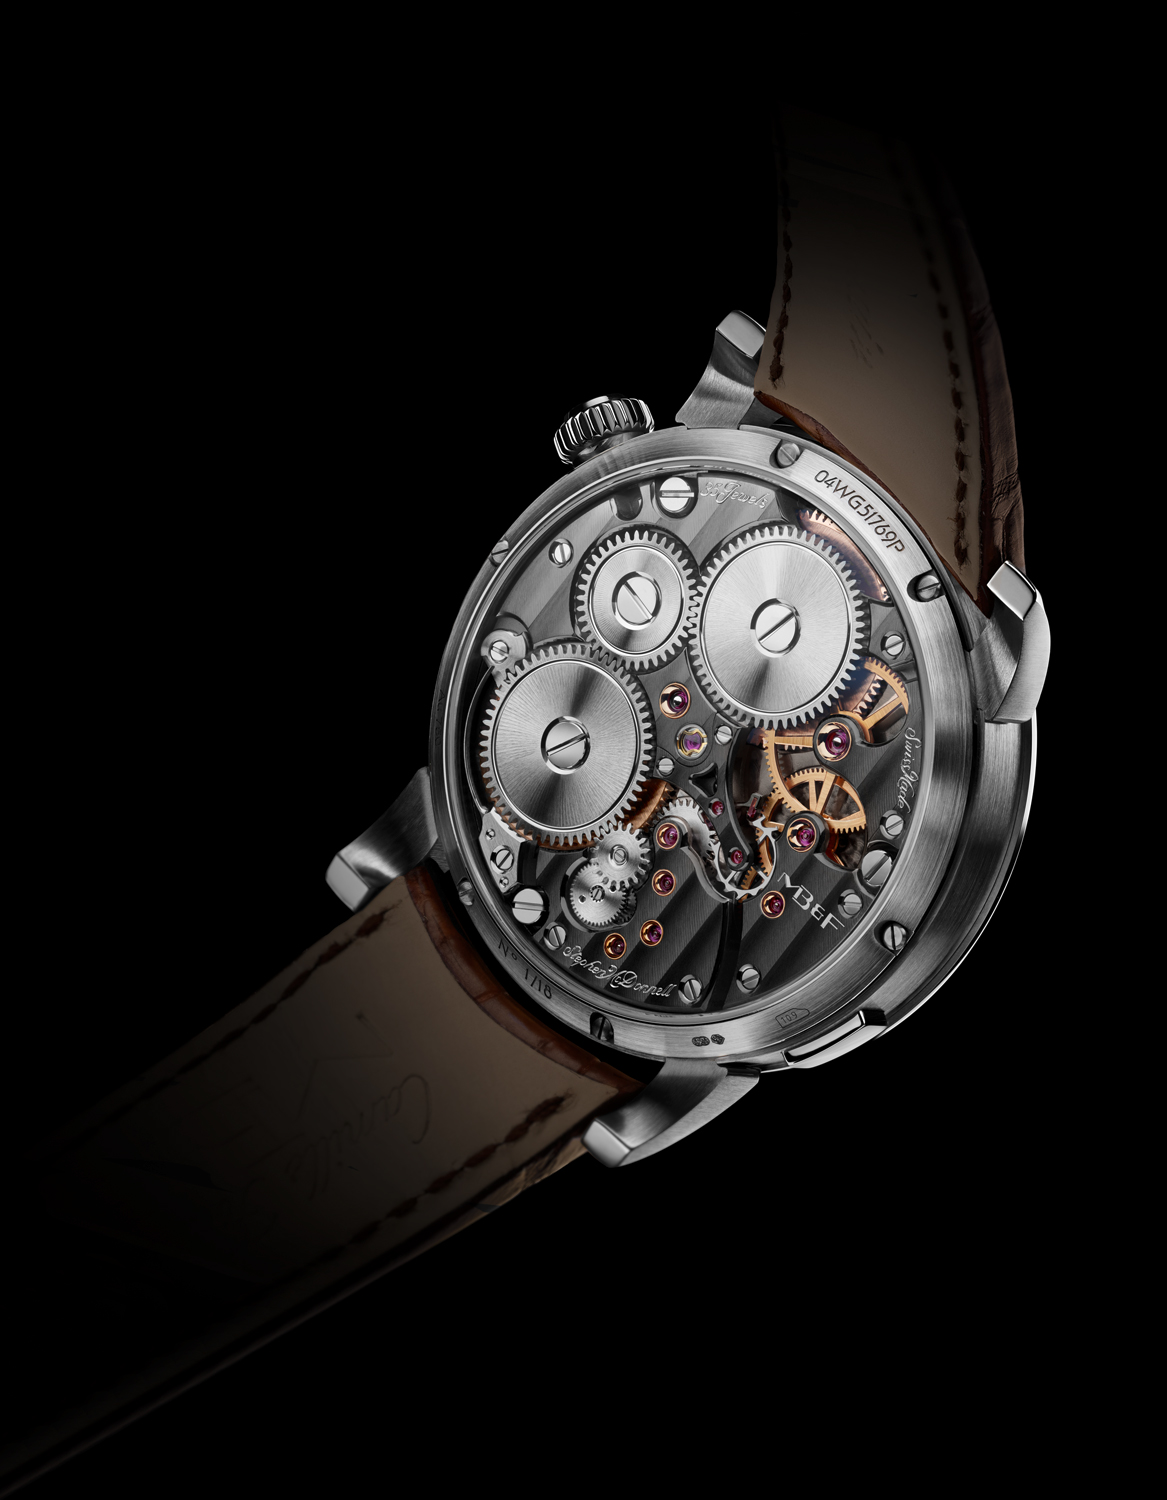 LM Split Escapement WG Ruthenium Back Lres